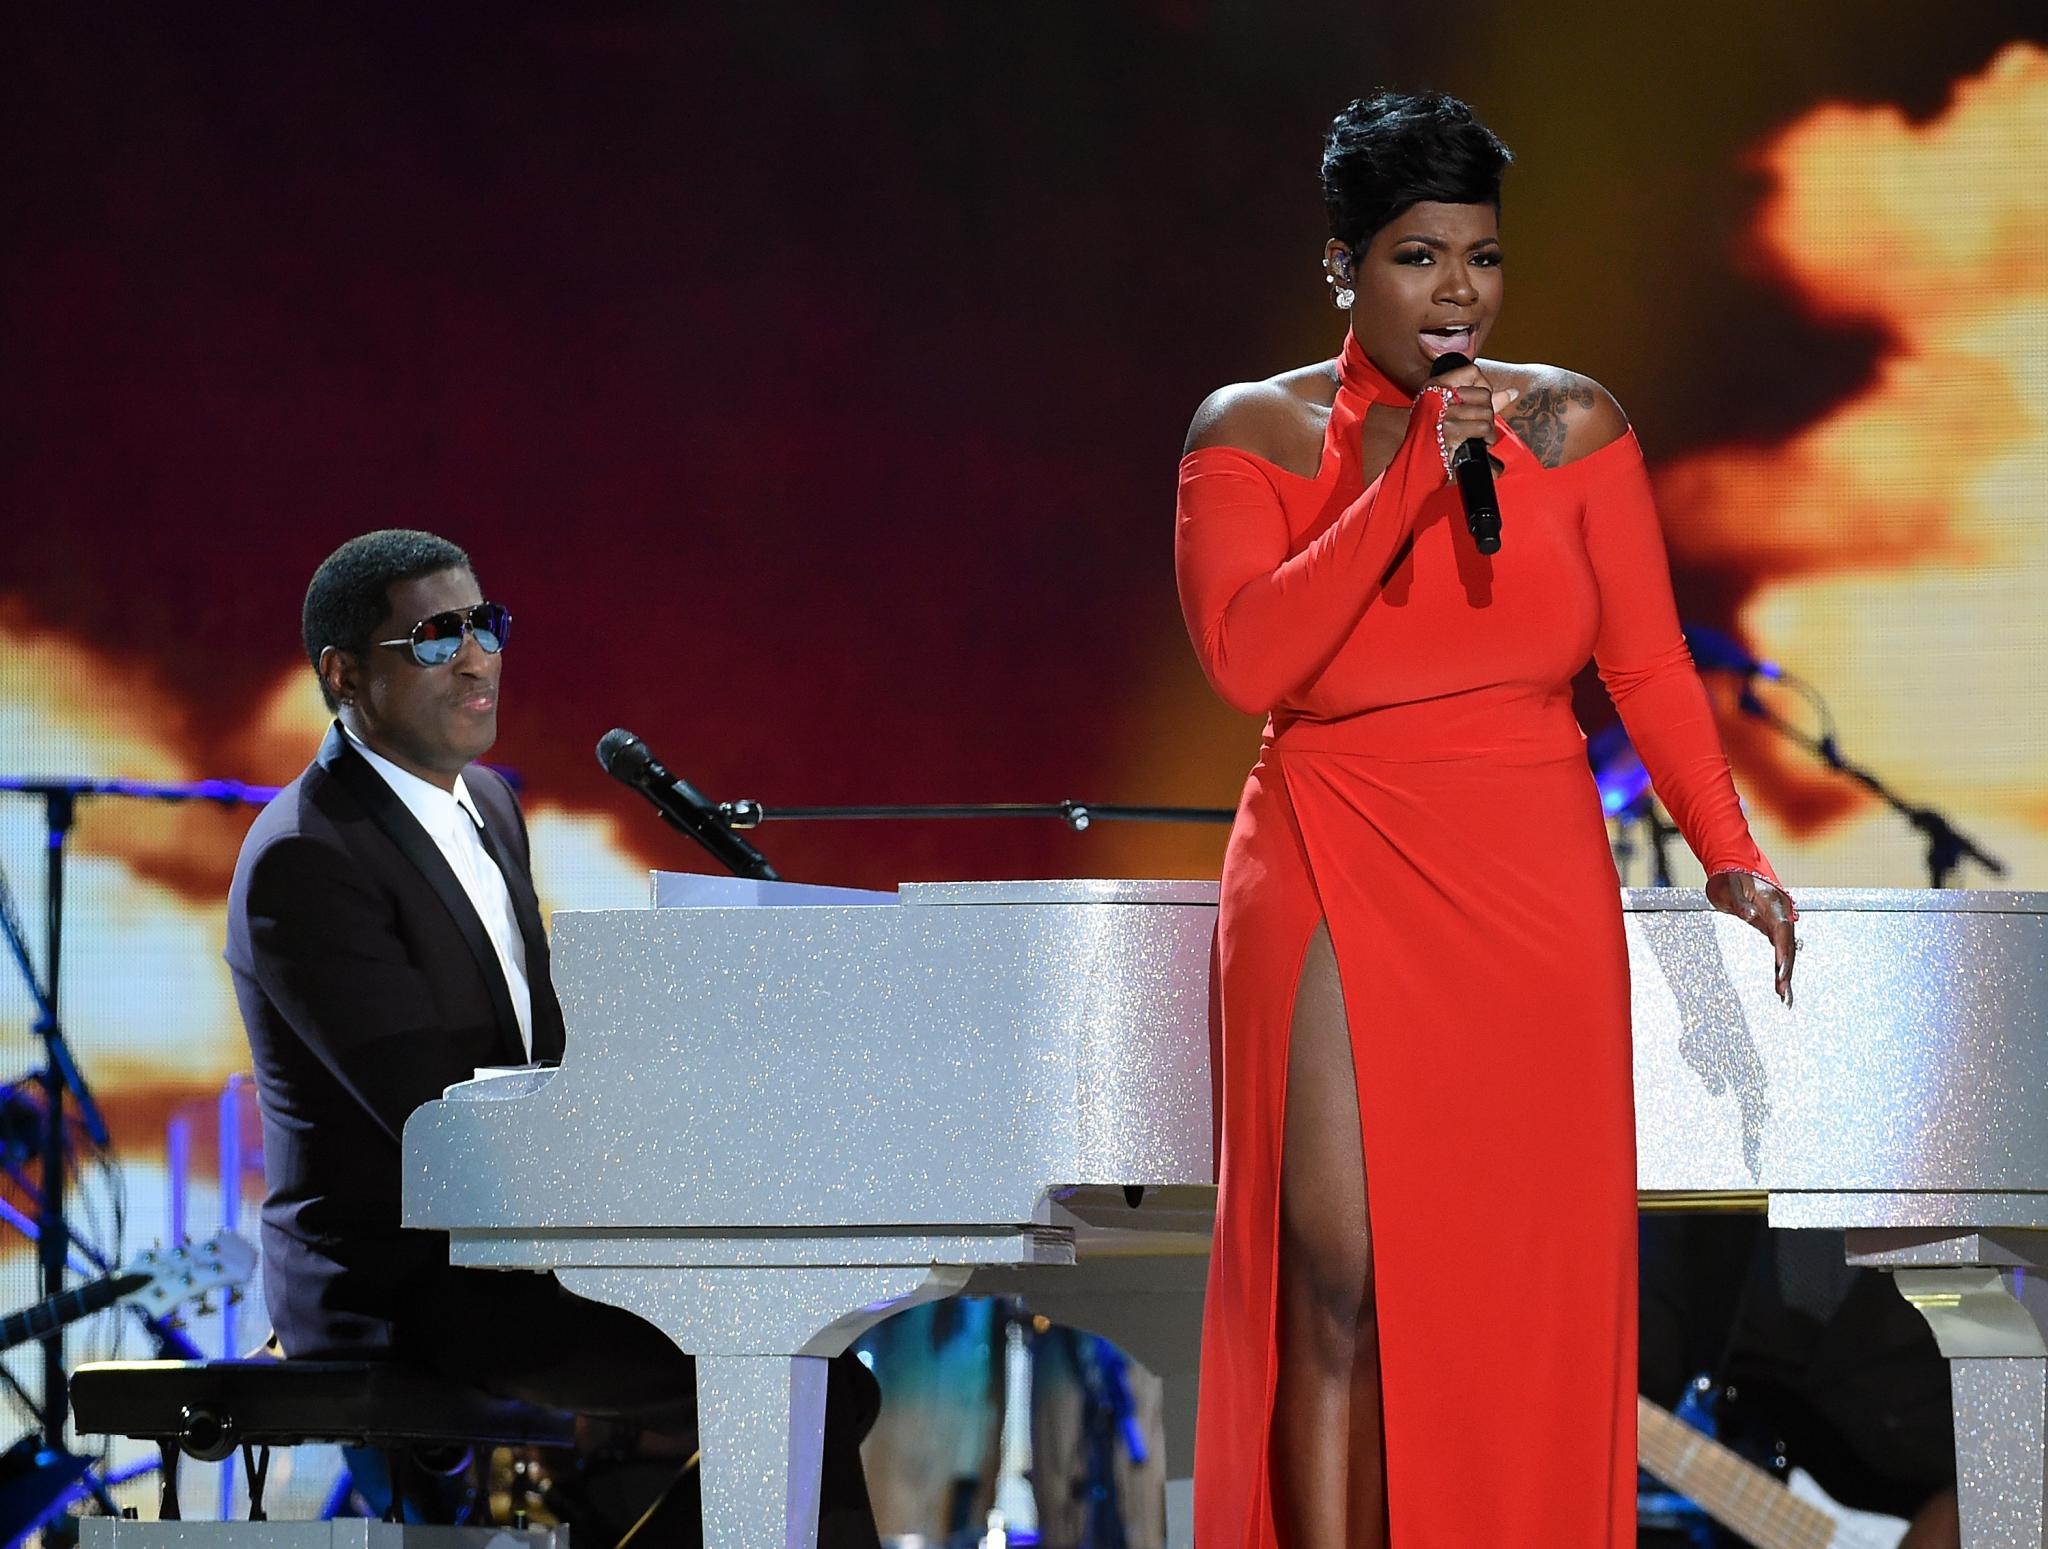 Fantasia Sings 'Superwoman' At the Soul Train Awards and Slays It—Watch a Sneak Peek